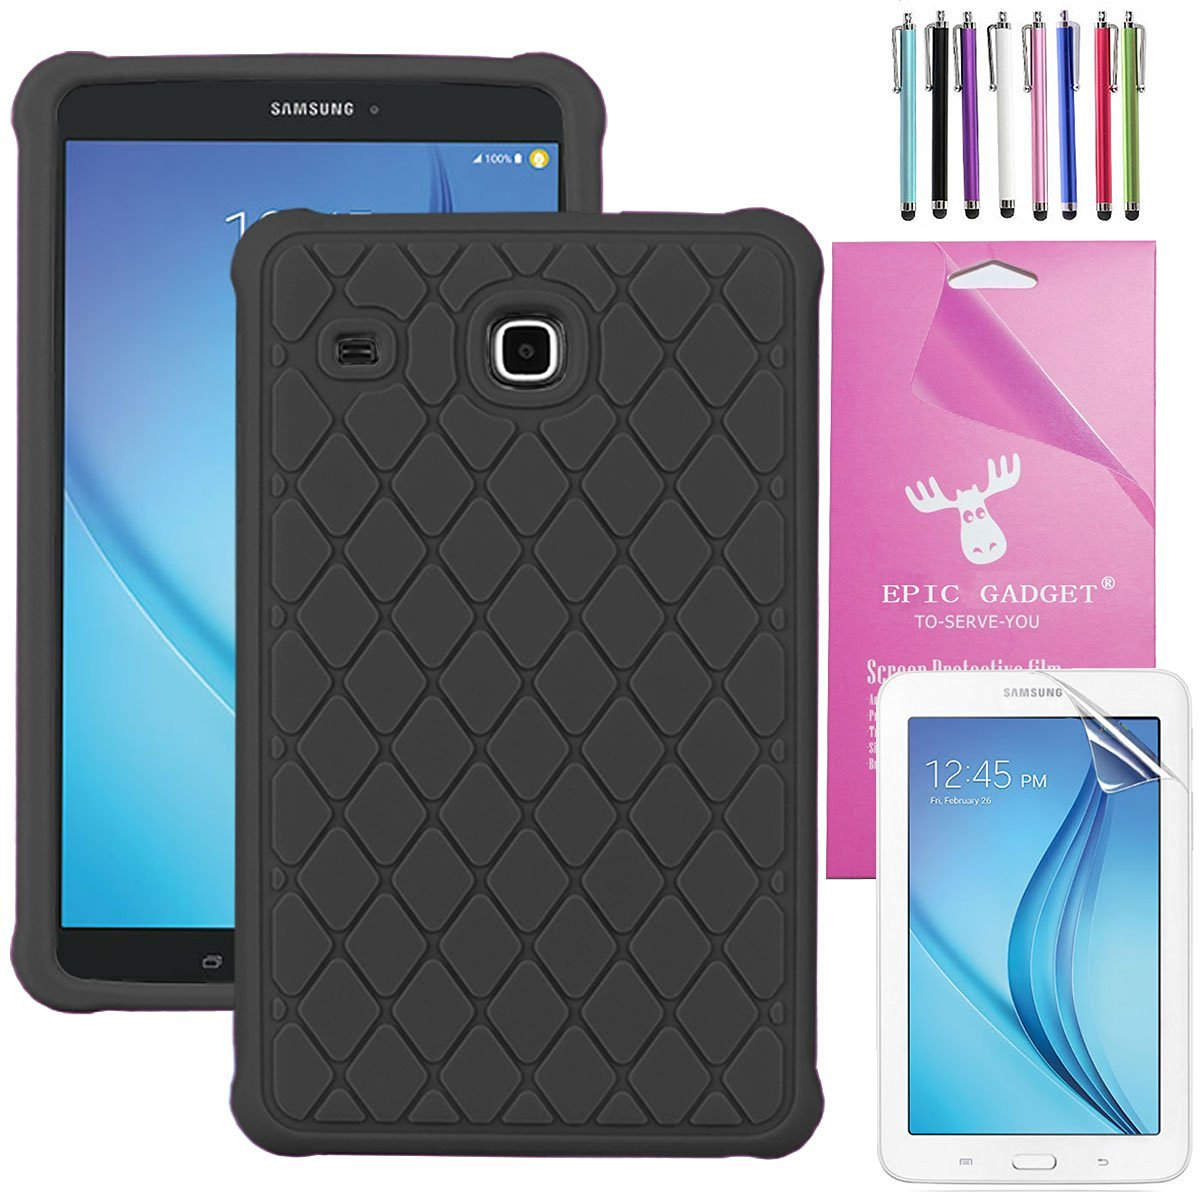 "Galaxy Tab E 8.0 Case, EpicGadget(TM) Diamond Grid Silicone Rubber Gel Cover Case with Full Protection For Samsung Galaxy Tab E 8.0"" SM-T377/T375 Tablet, Free Screen Protector+Stylus(Black)"